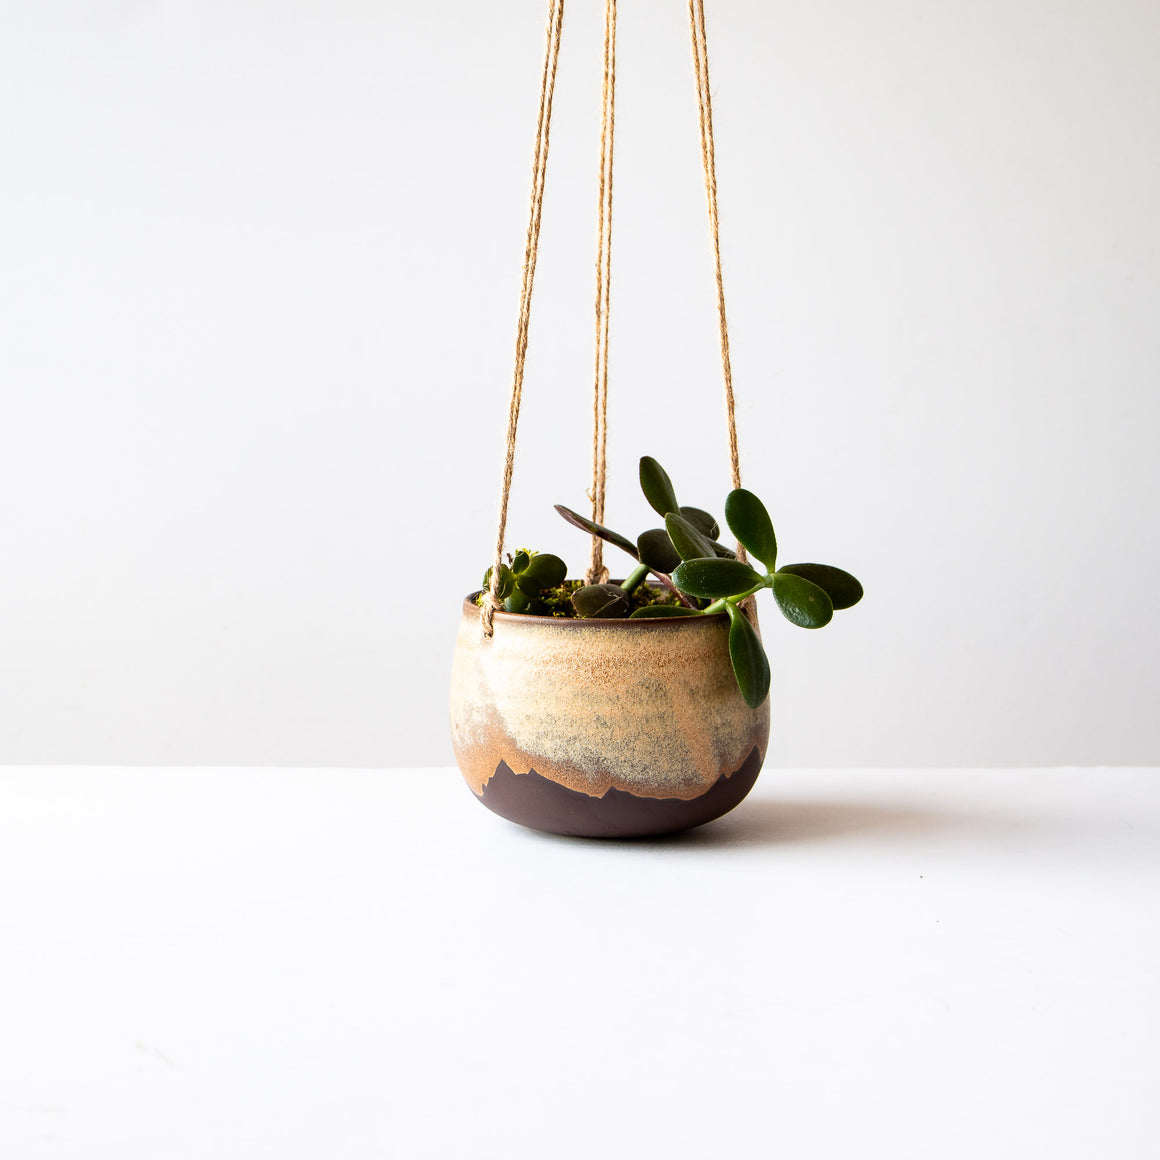 Black Stoneware Ceramic Hanging Planter